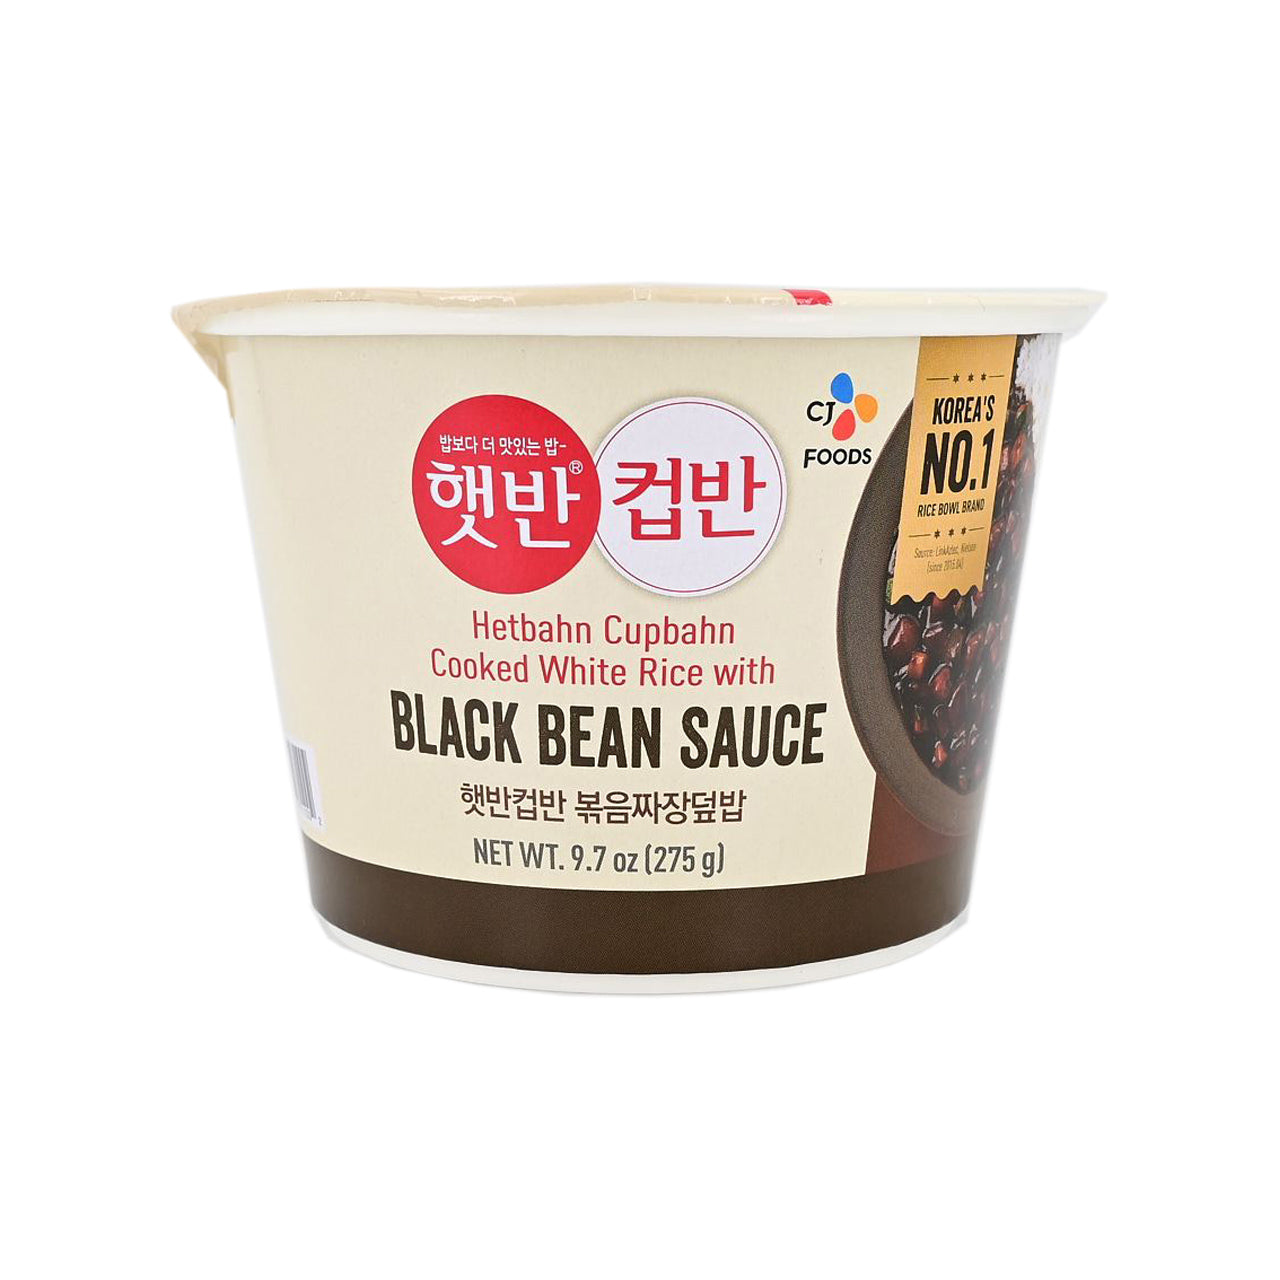 CJ 컵반 볶음짜장덮밥 (Cupbahn Cooked White Rice with Black Bean Sauce) 275g